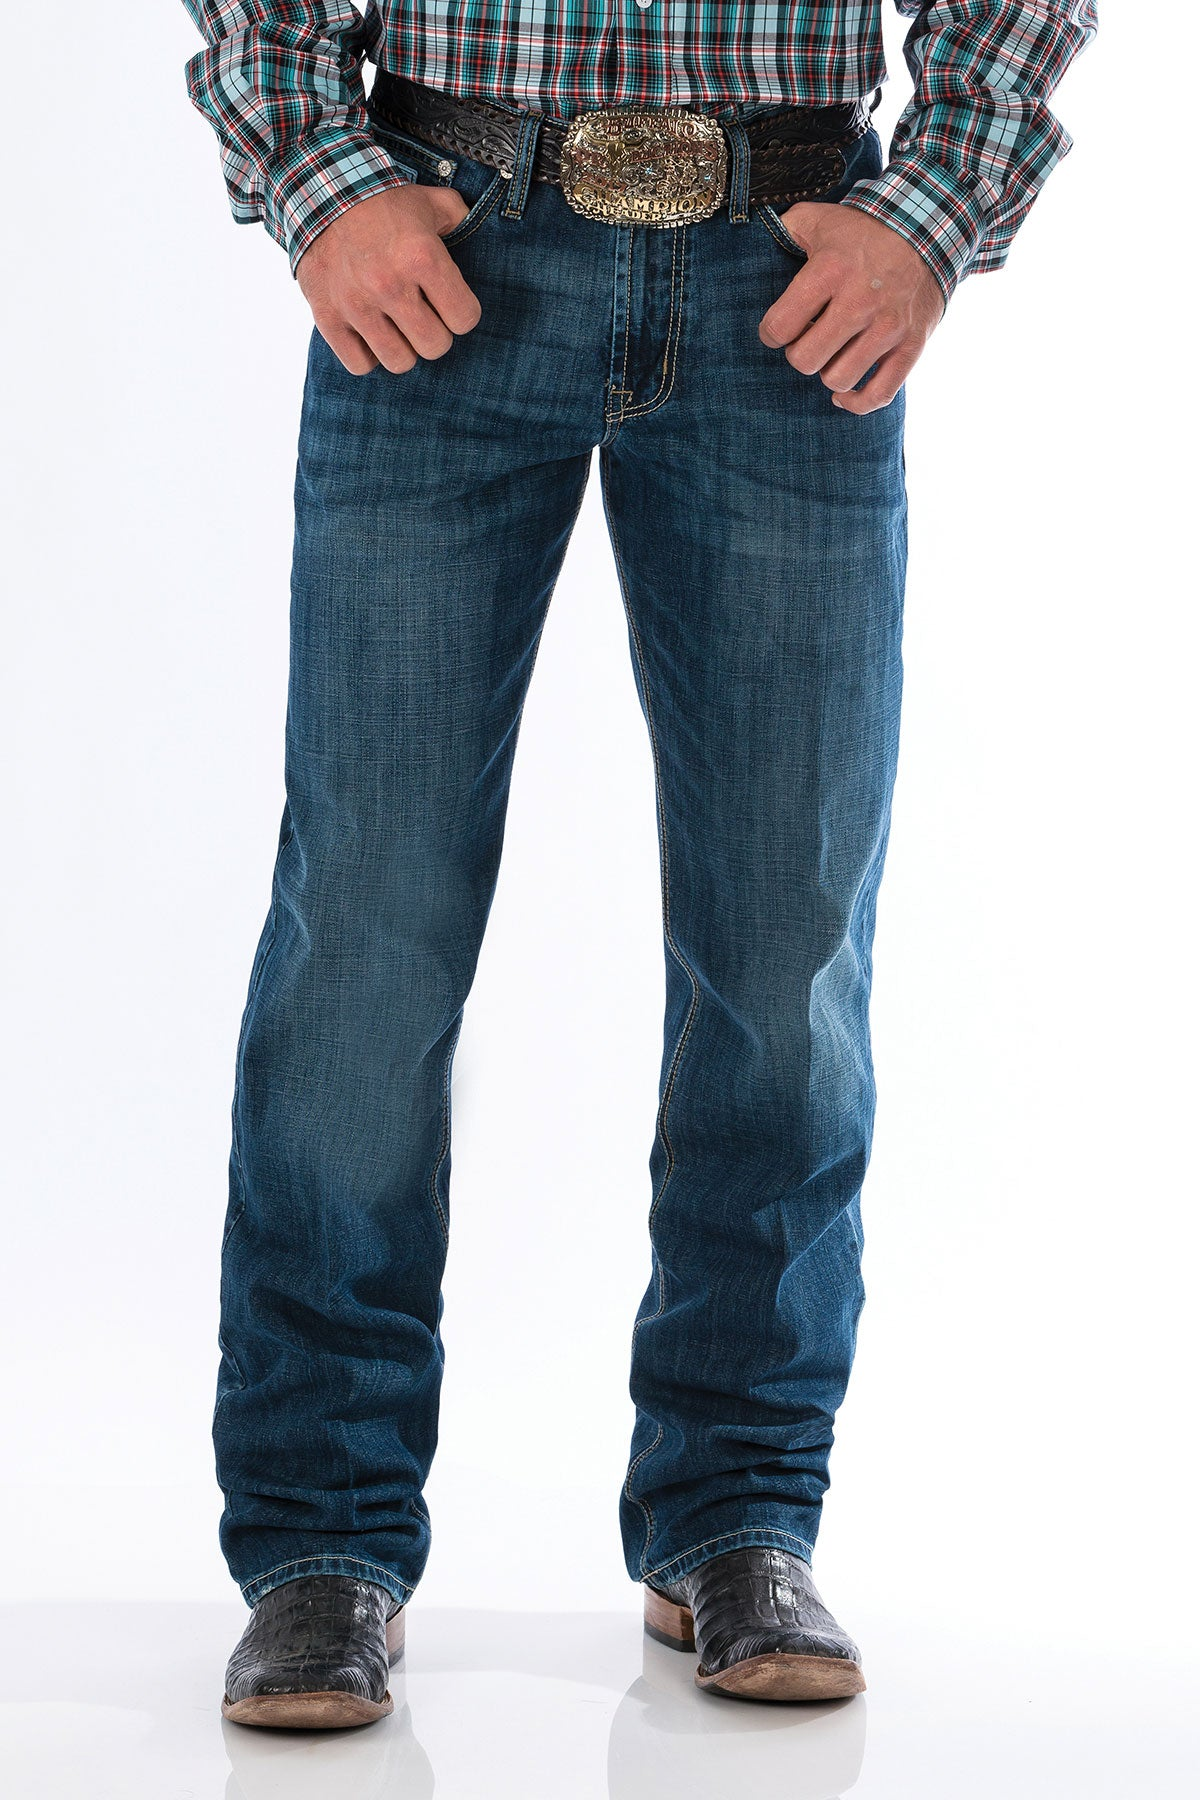 Men's White Label jean By Cinch